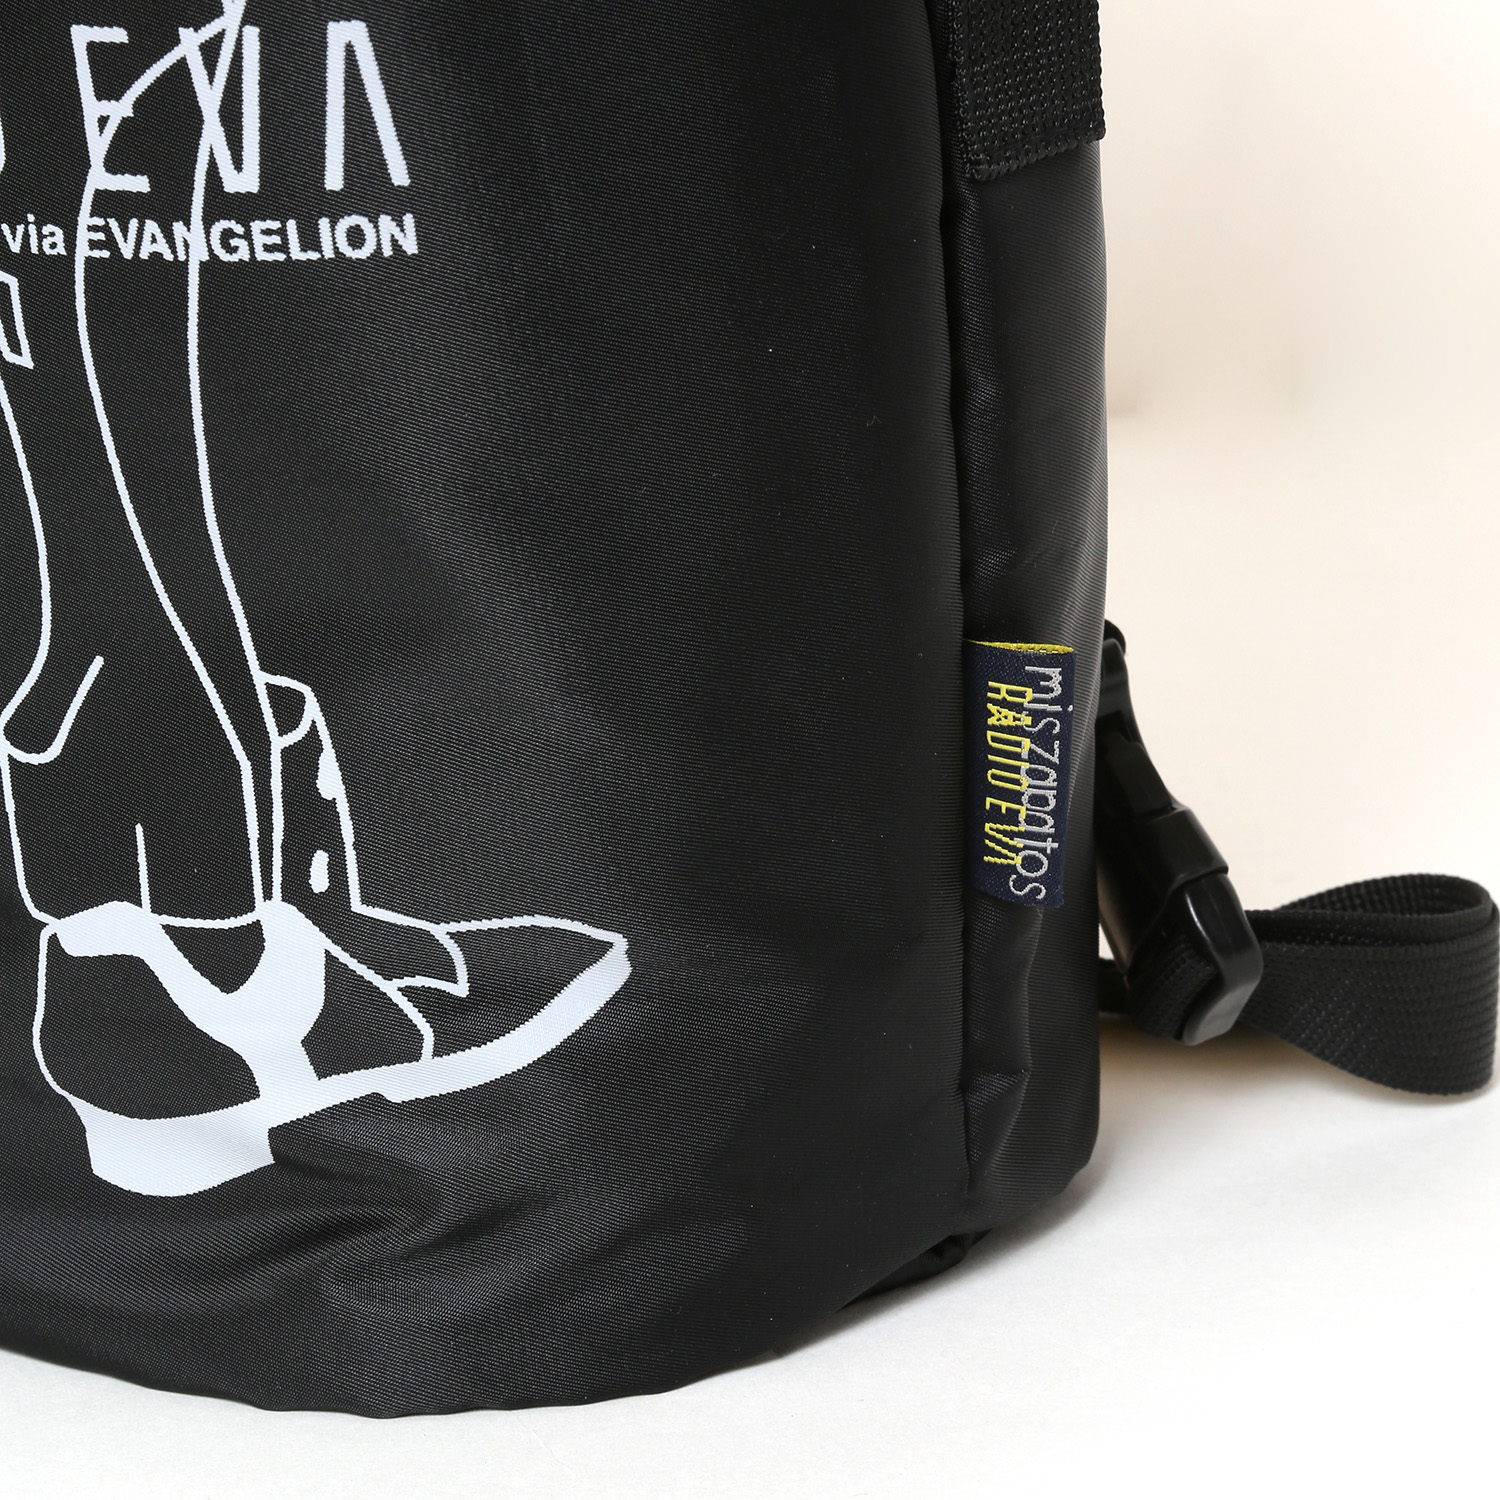 EVANGELION Pilot 3way Back Pack by mis zapatos (ブラック(レイ))